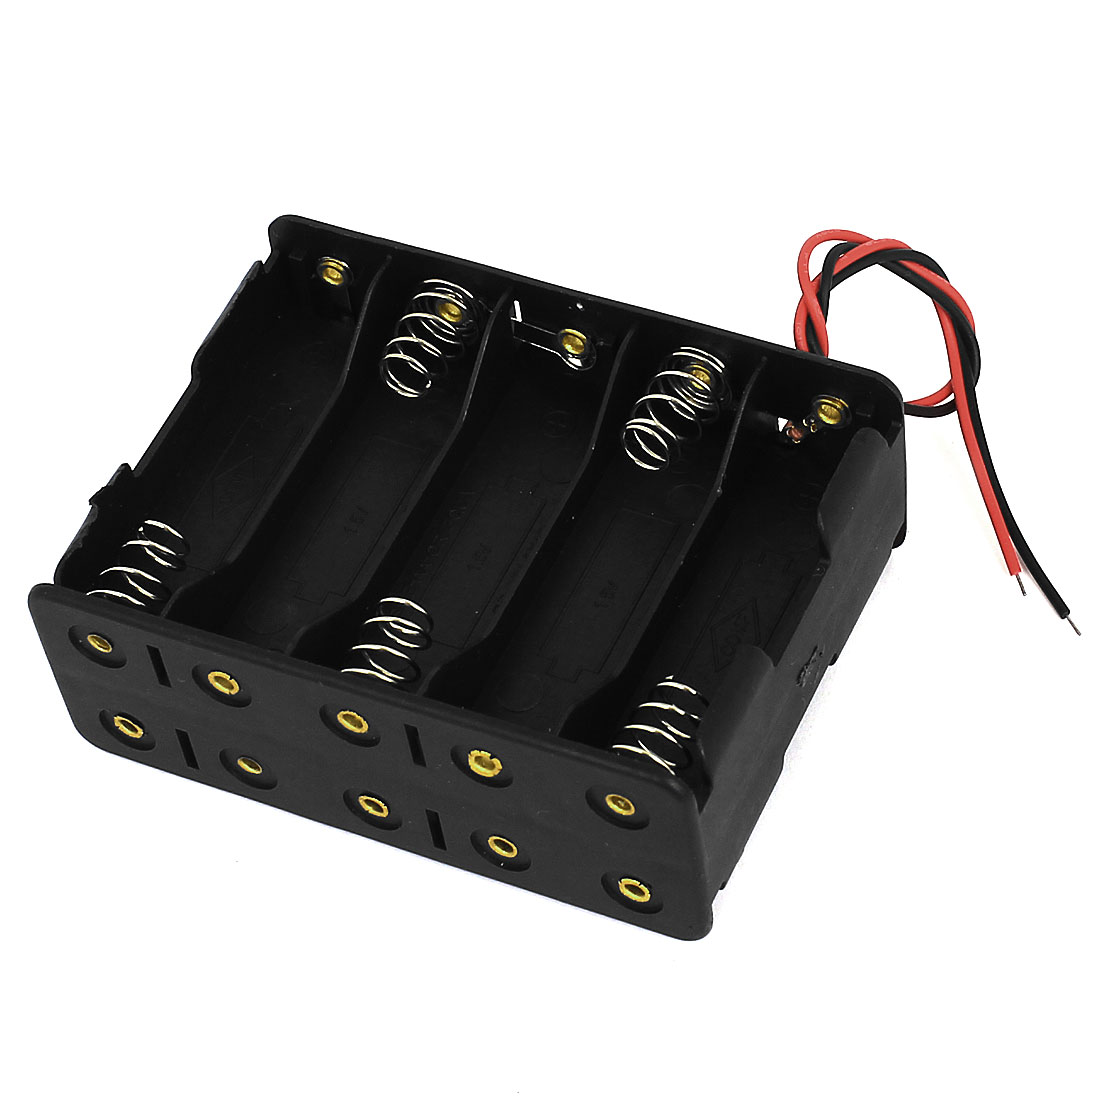 Black Plastic Shell 2-Wire 10 x 1.5V AA Battery Holder Case Box